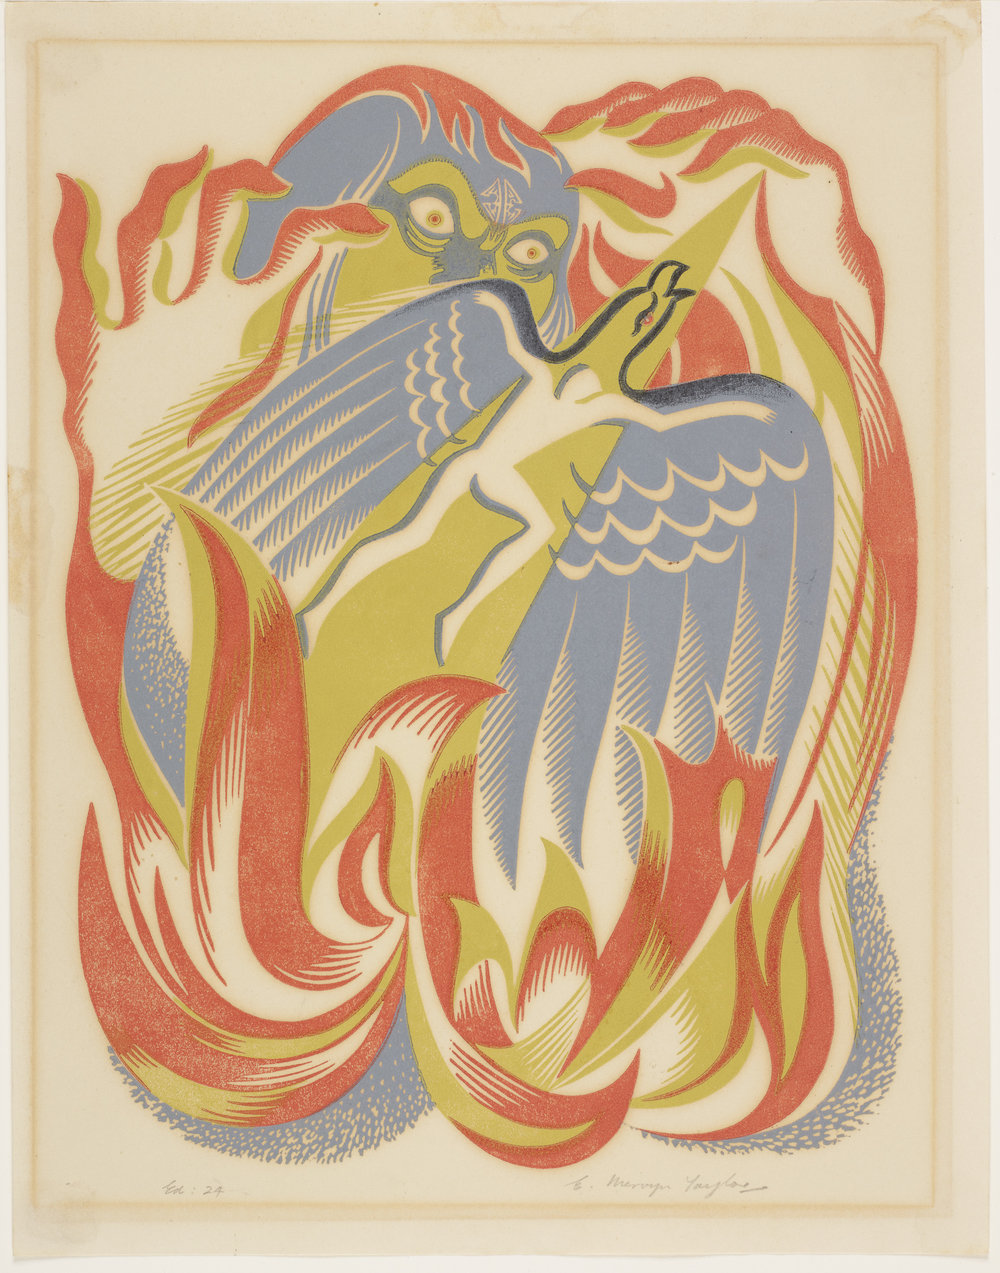 Maui and the fire goddess , 1952, Wellington, by E Mervyn Taylor. Purchased 2004. Te Papa (2004-0026-1)